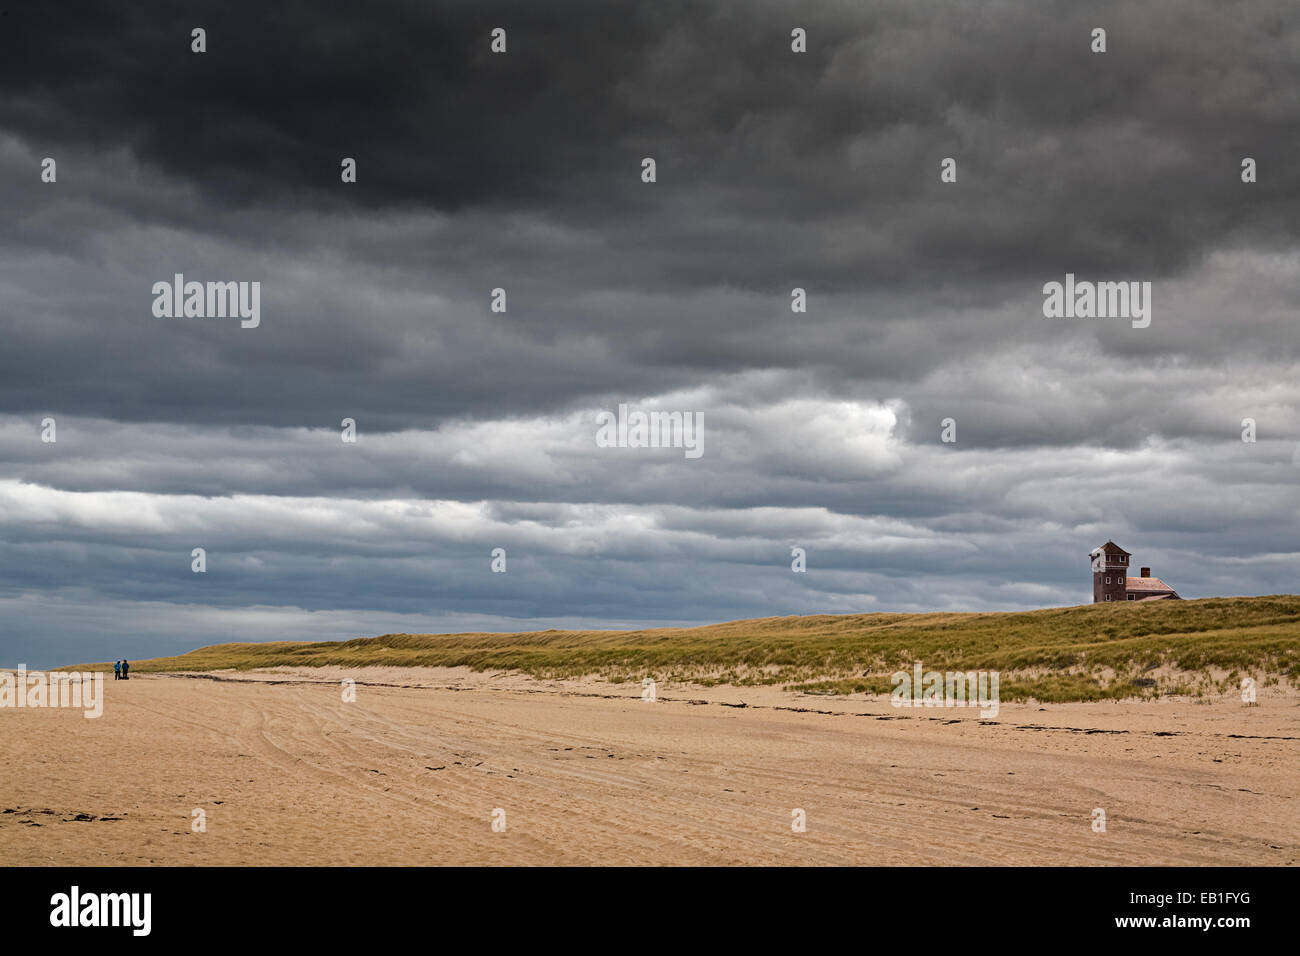 Moody sky over a Cape Cod beach, Massachusetts. - Stock Image